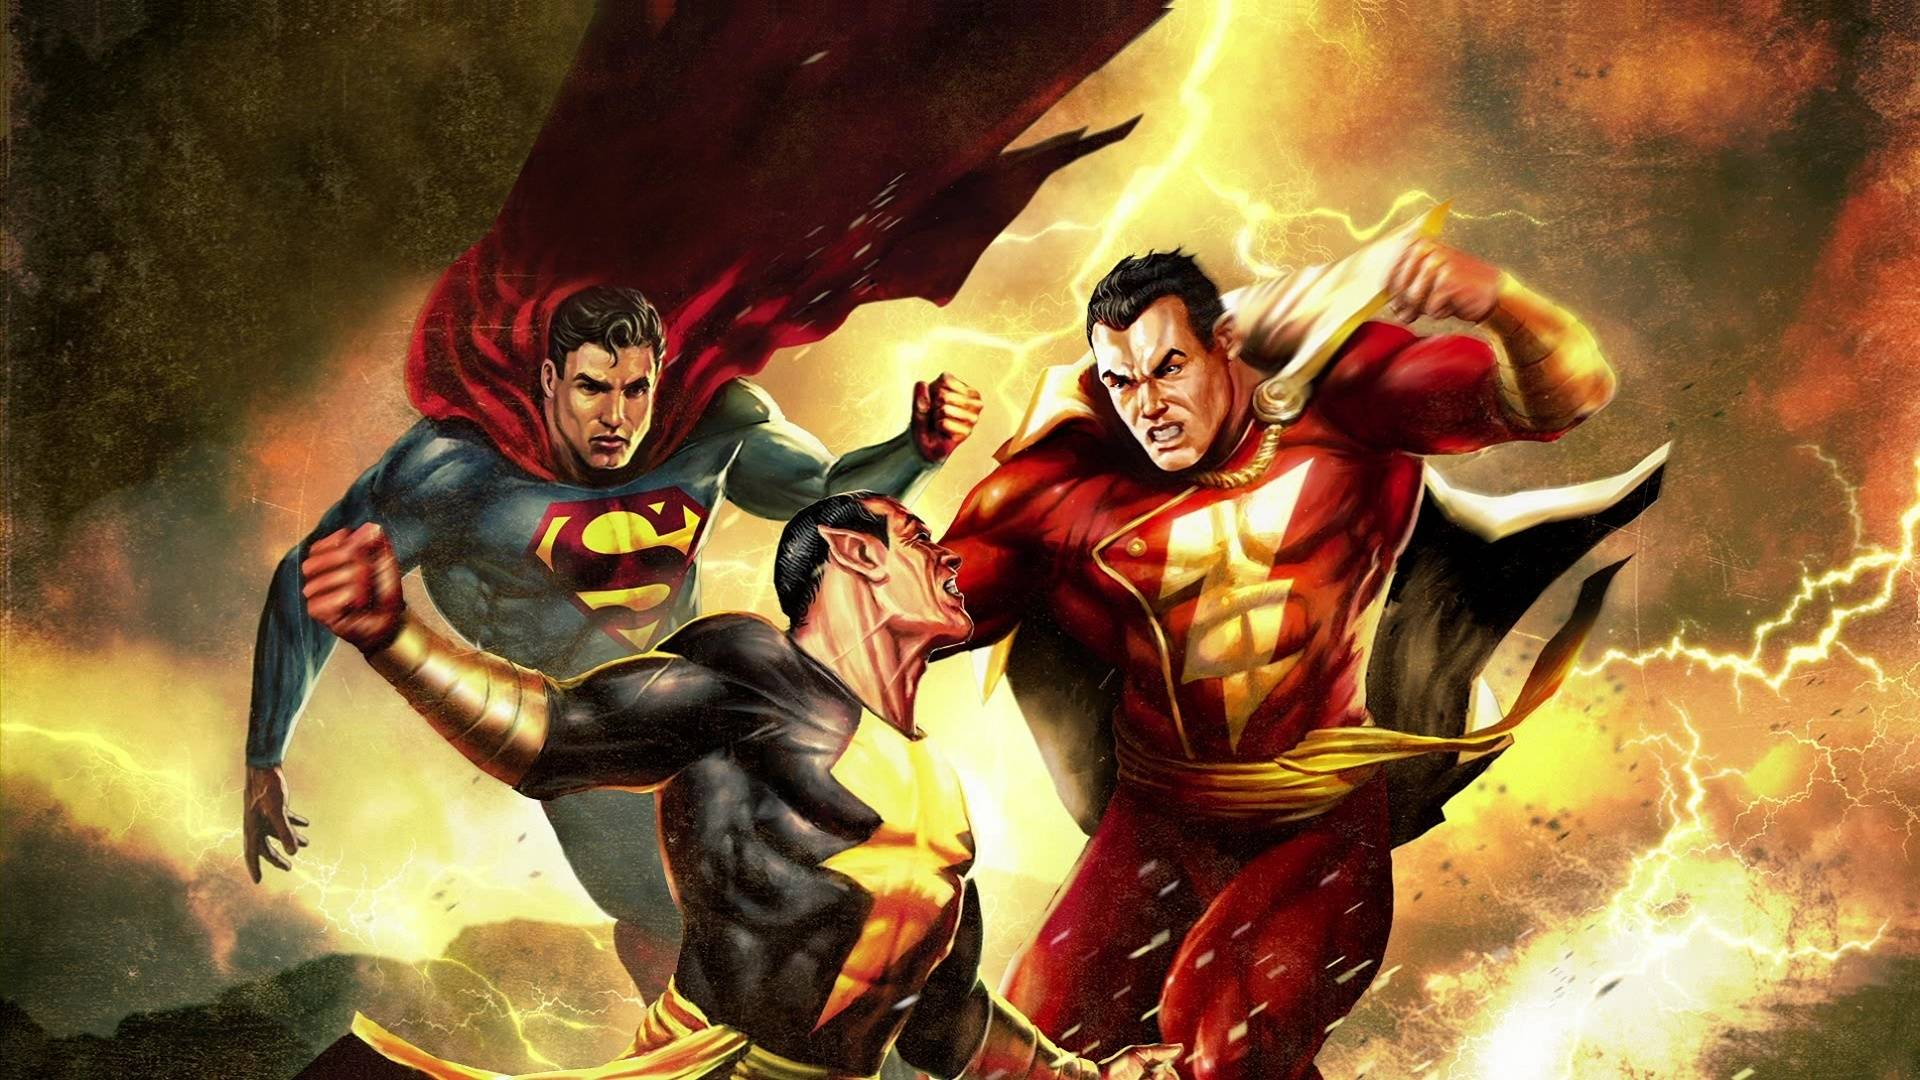 Superman Shazam The Return Of Black Adam Wallpaper